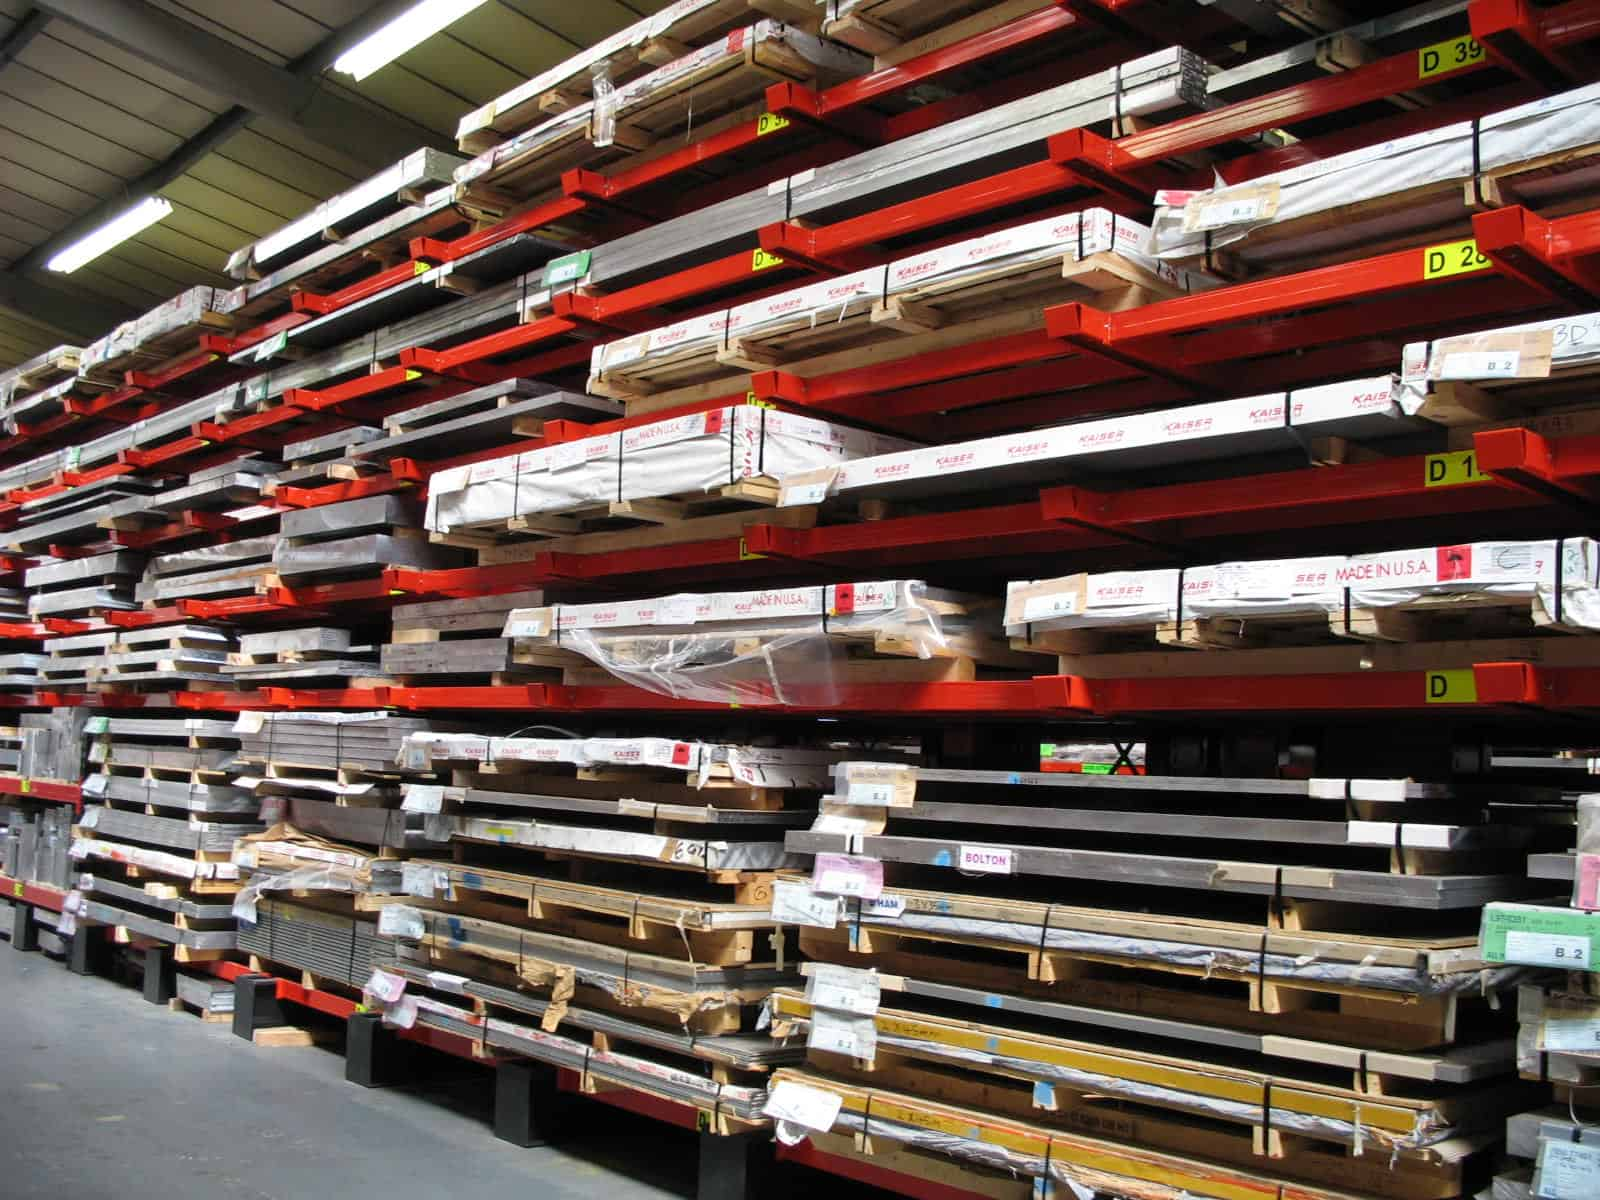 Metal Sheet Materials stored on Cantilever Racking with Rail Supports